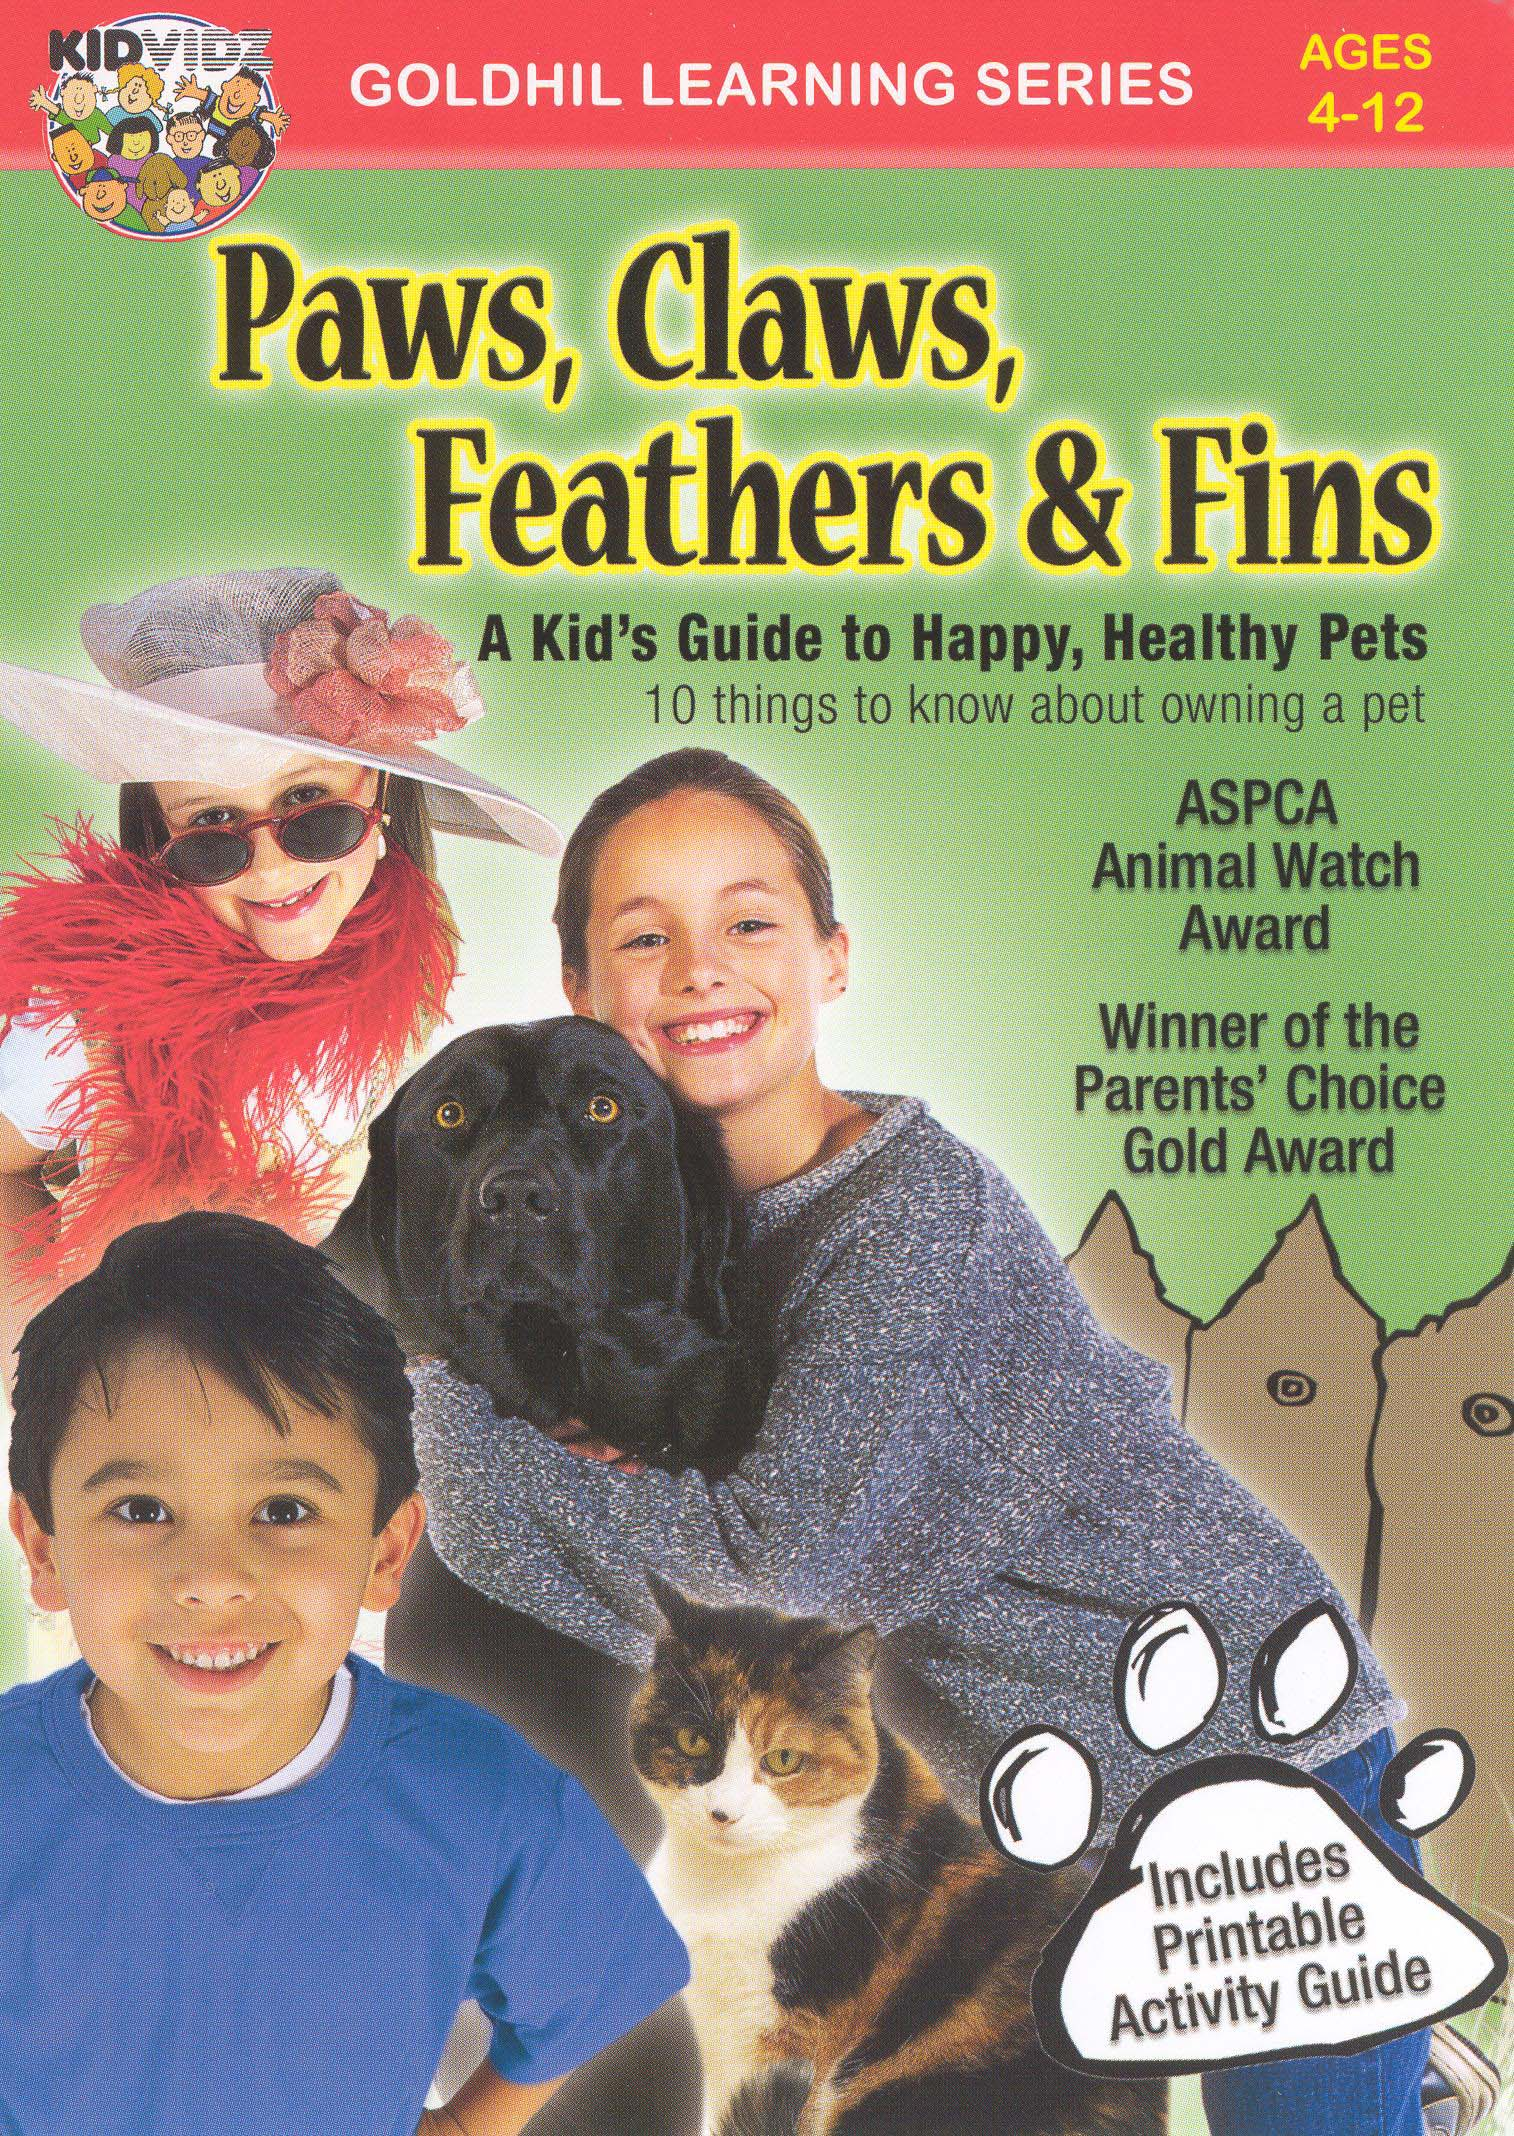 Paws, Claws, Feathers & Fins: A Kid's Video Guide to Pets